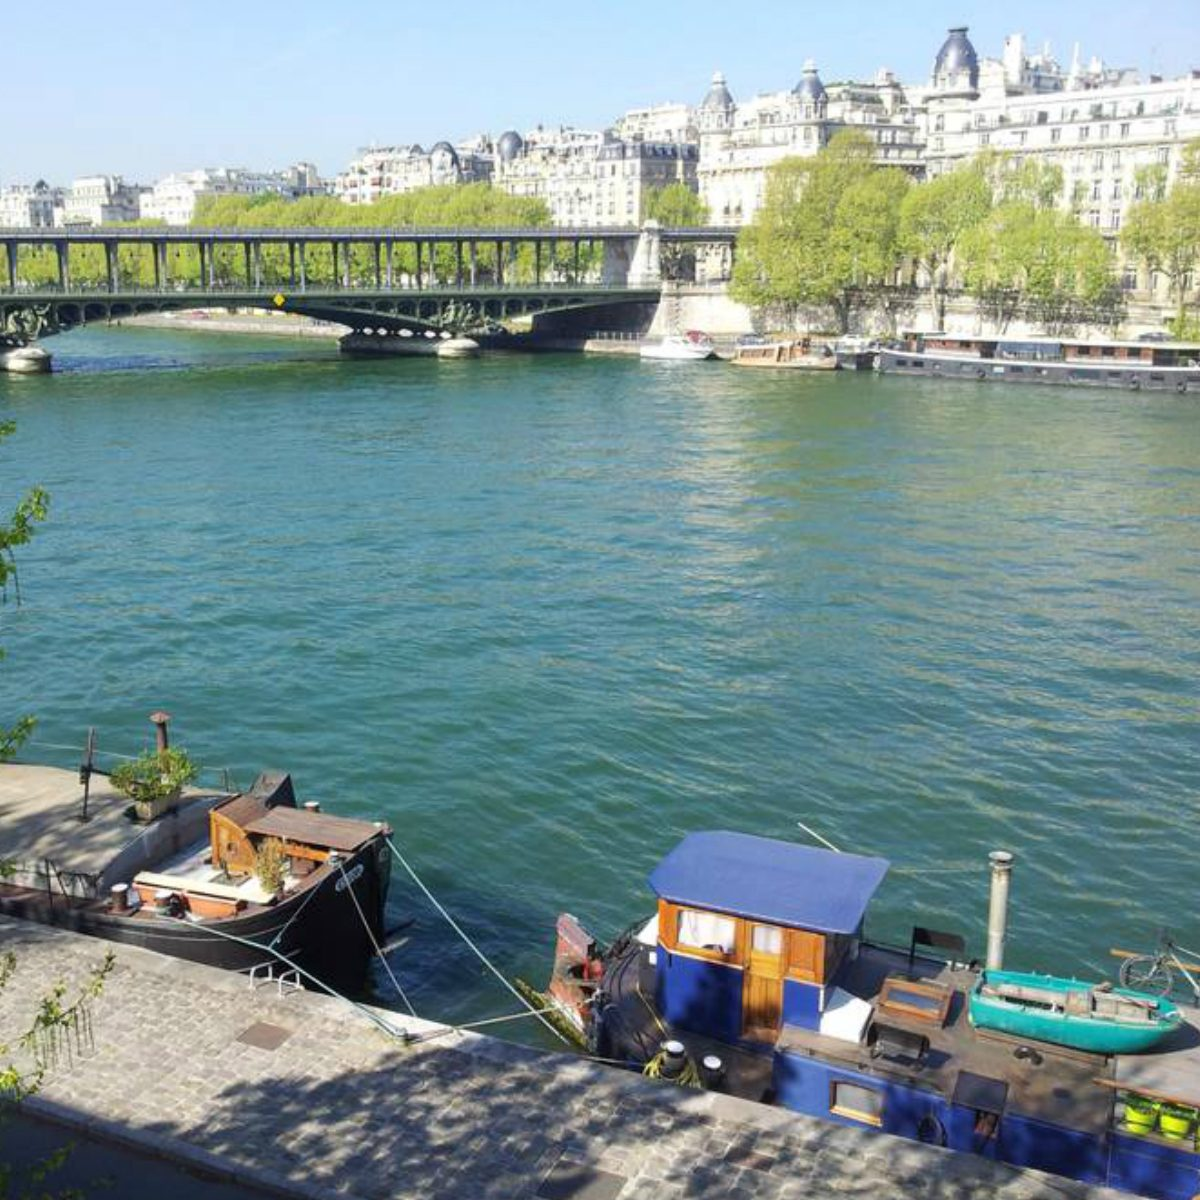 Airbnb Peniche Paris These 50 Airbnb Houseboats Are Like Living In A Floating Tiny